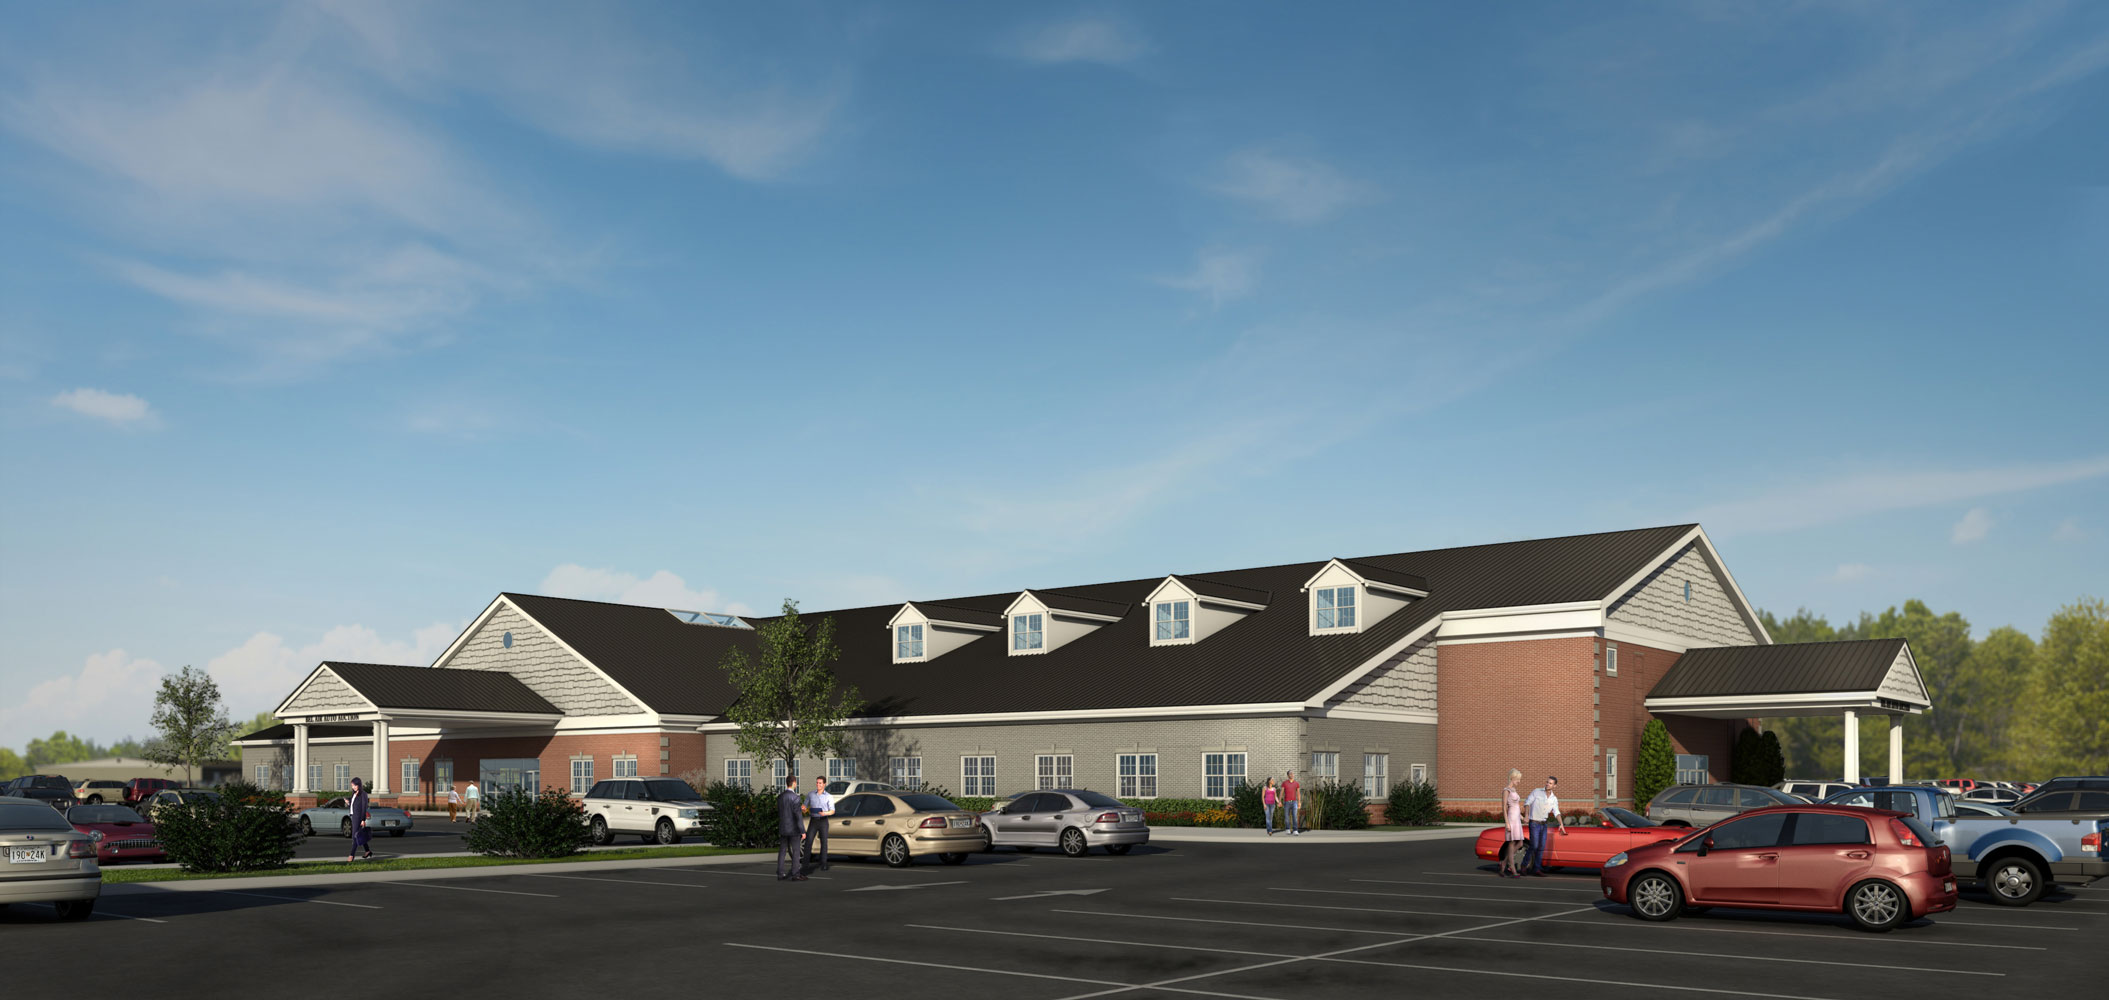 BSC Auto Auction Architectural 3D Rendering